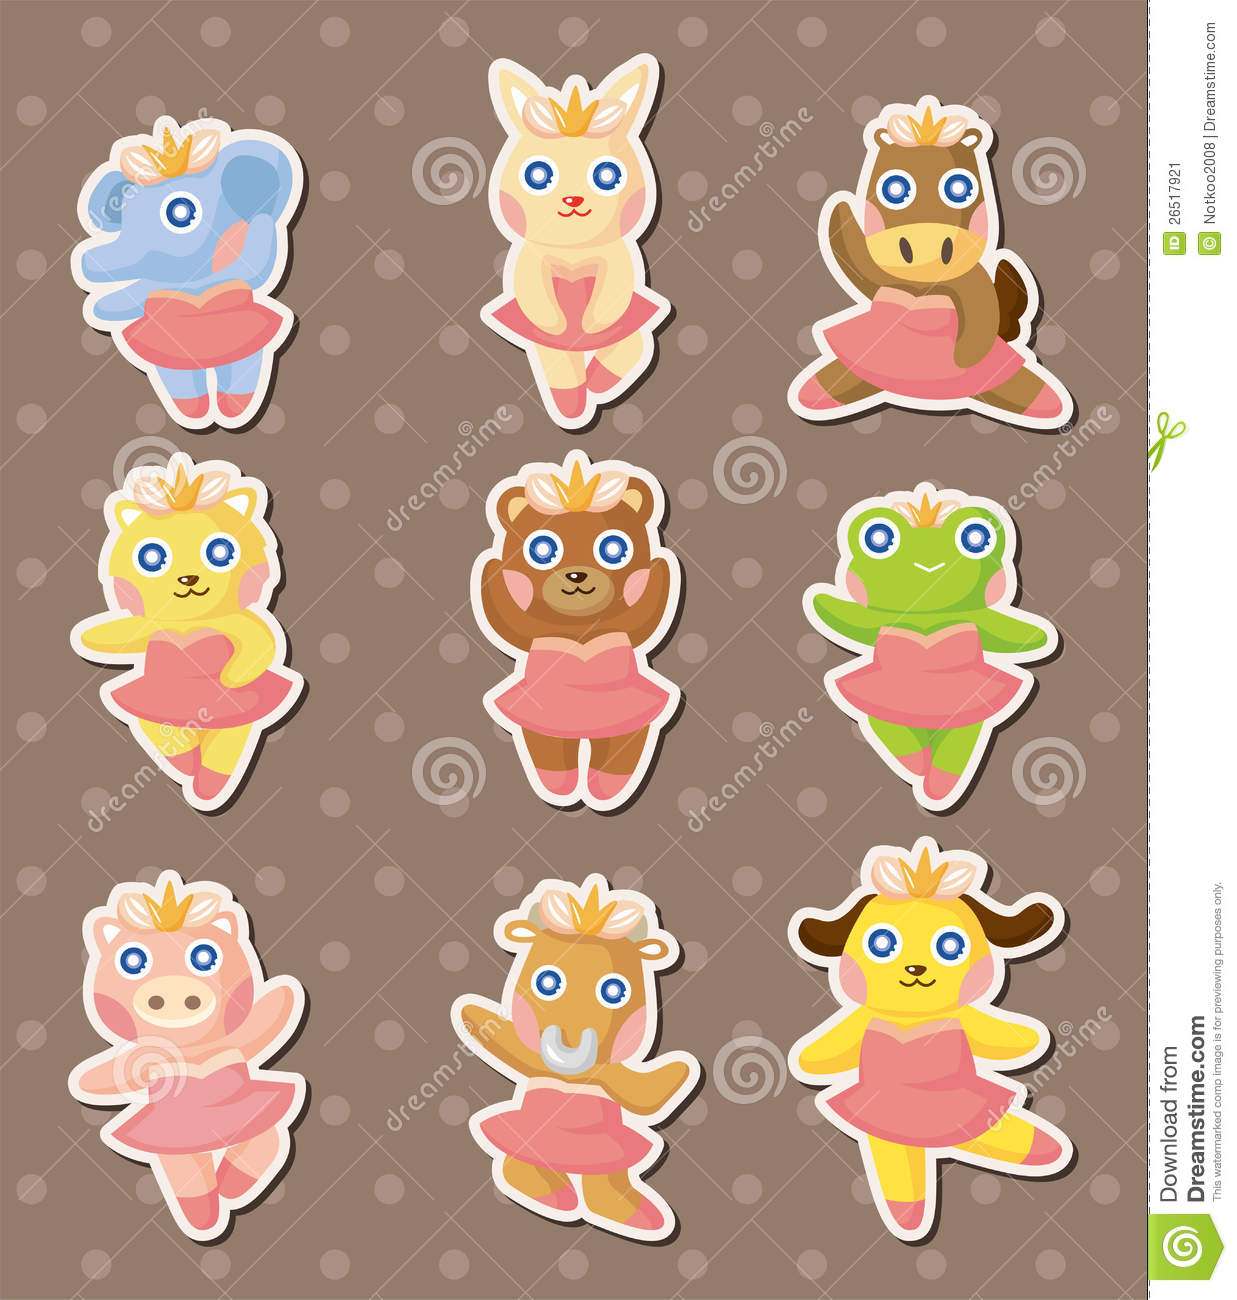 cartoon animal stickers in - photo #24